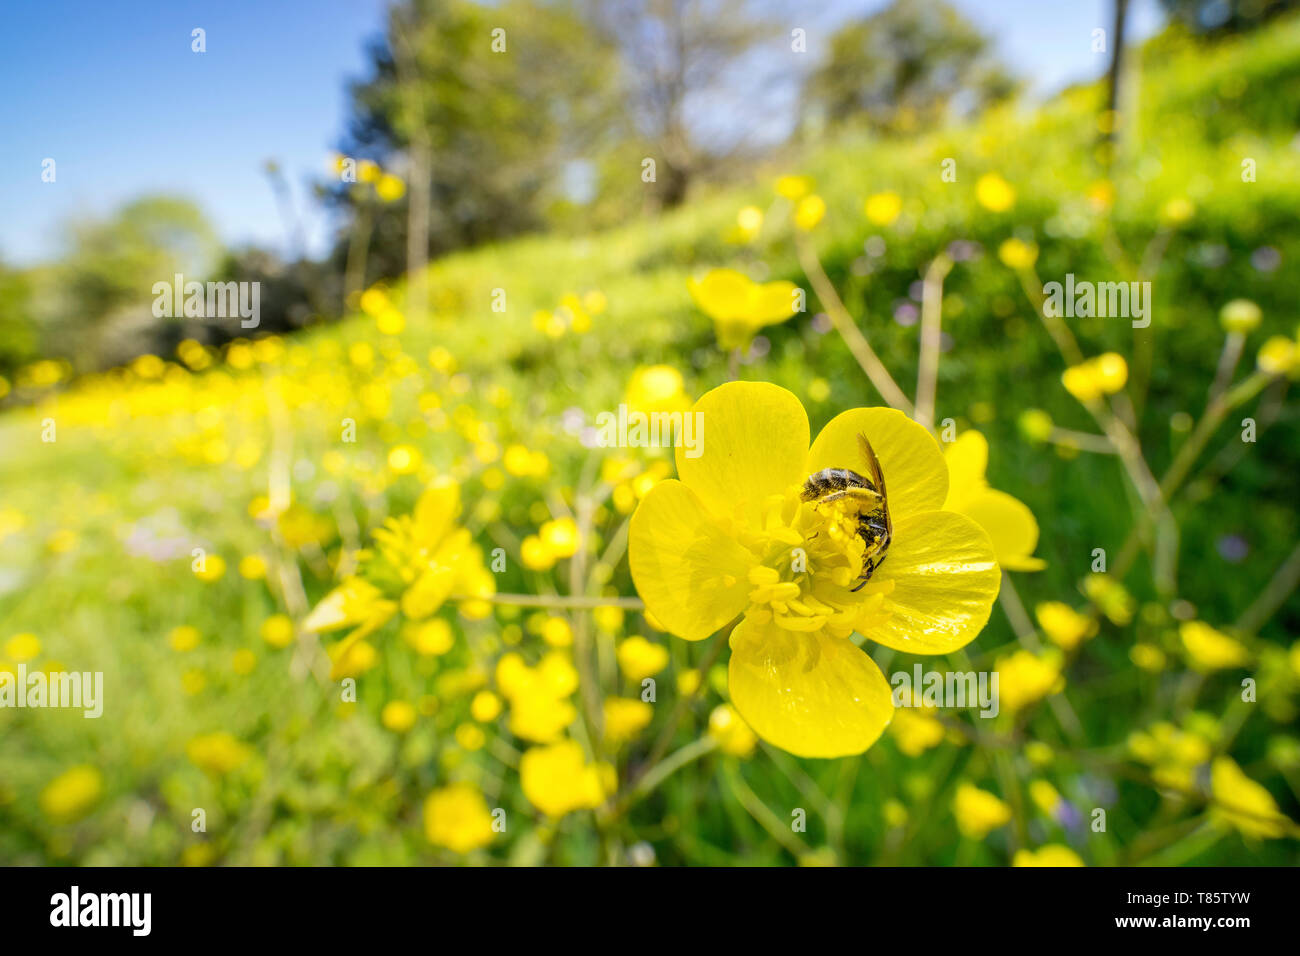 Sweat bee no buttercup flower - Stock Image